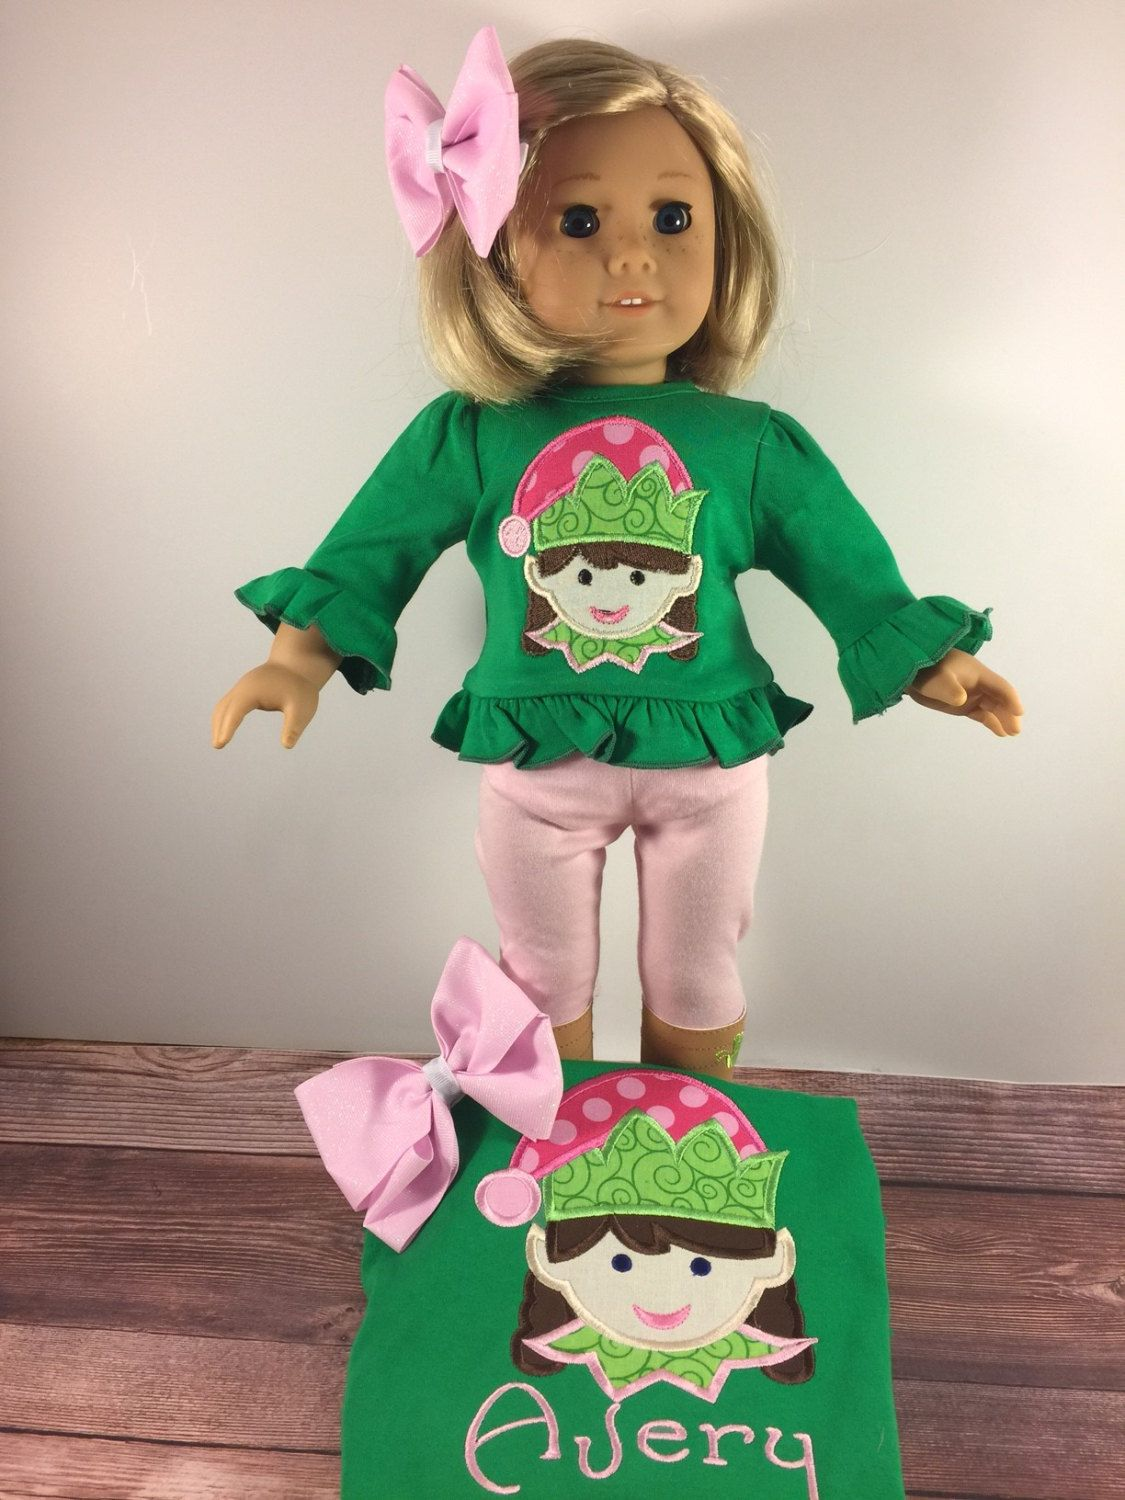 Matching Girl Doll Shirts;Girls Christmas Shirt;Girl And Doll;Dollie And Me;Made To Match;Girl Elf Shirt;Green Shirt;Christmas Shirts by AllAboutThemDolls on Etsy